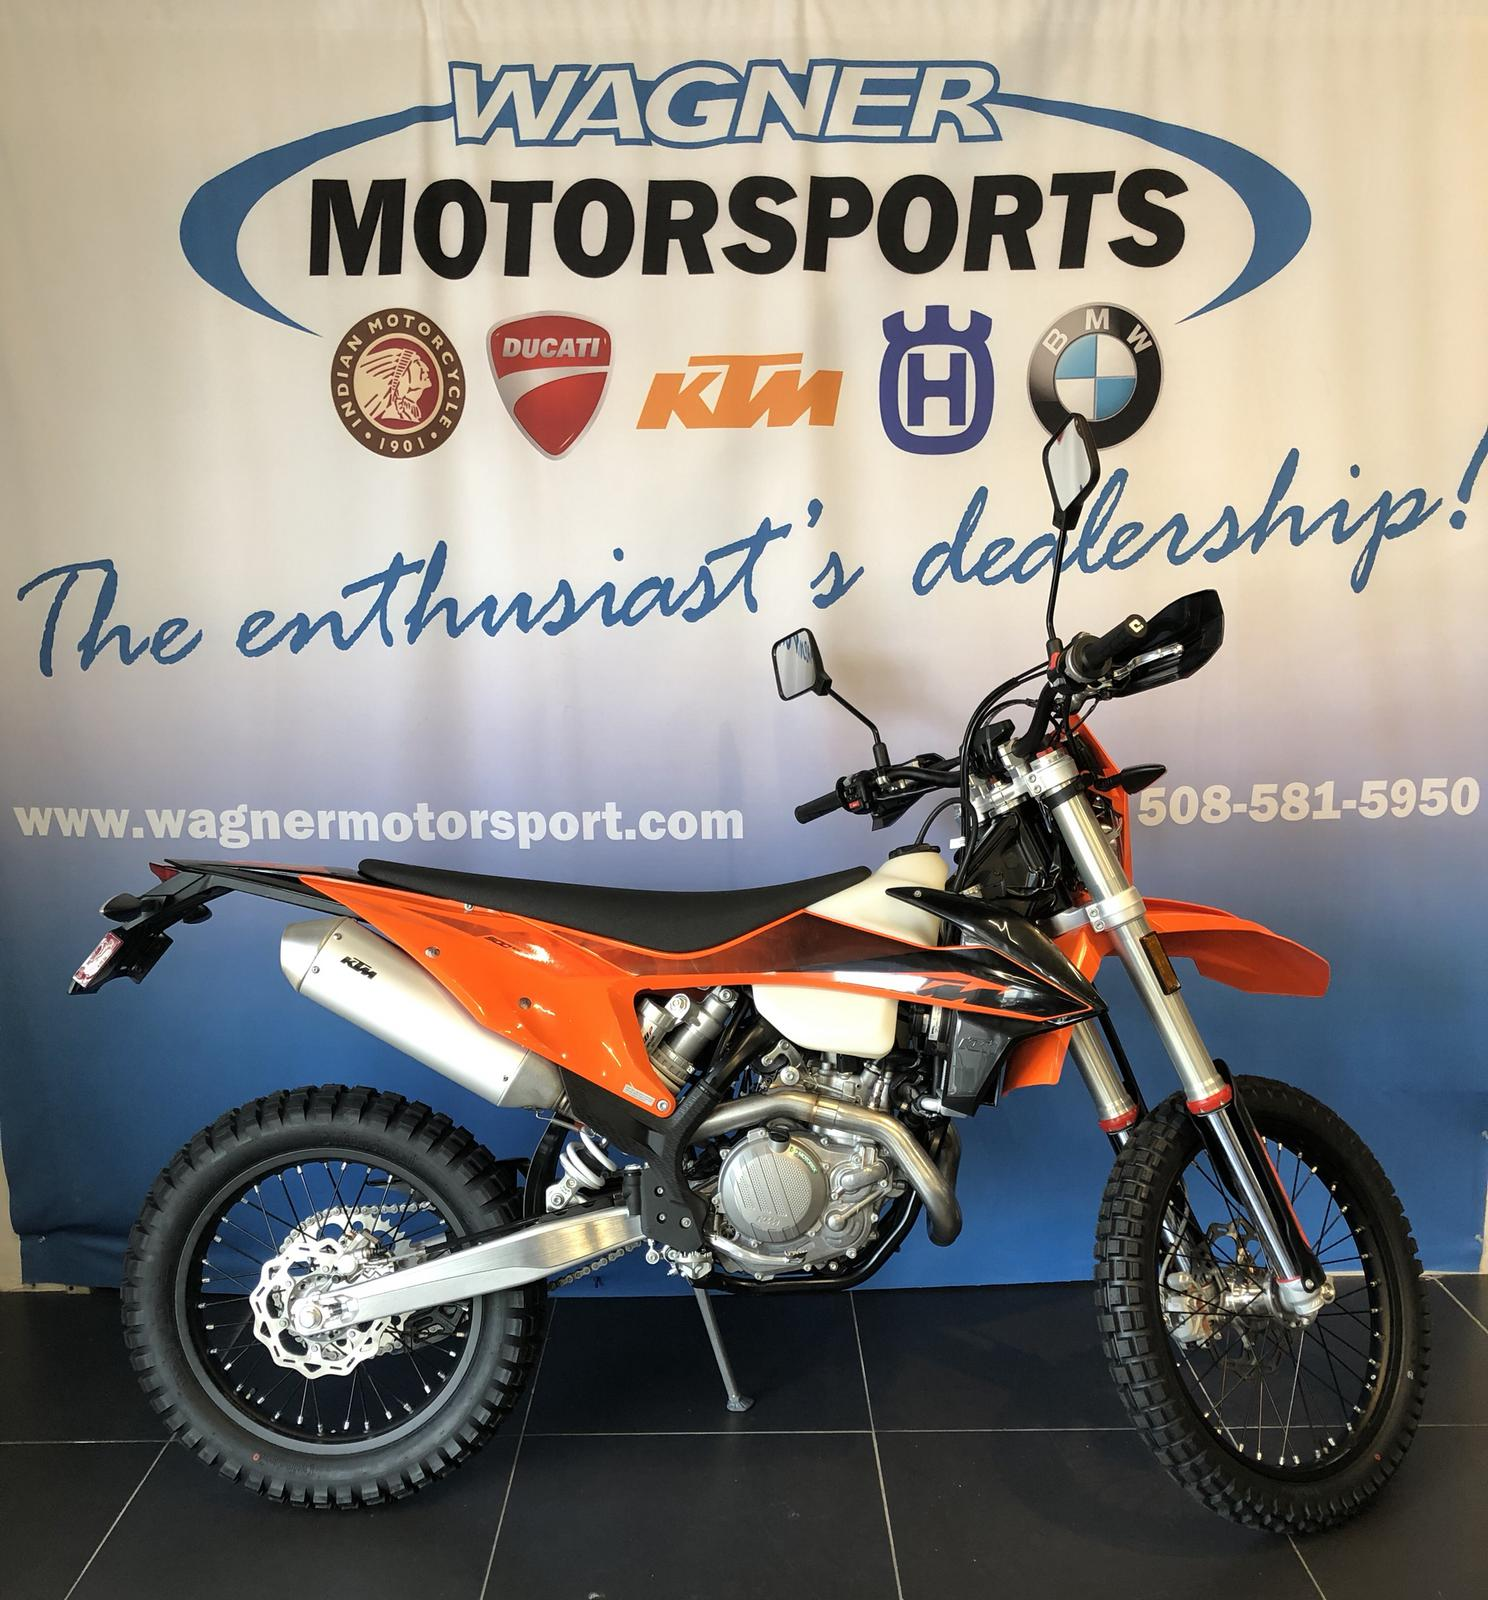 Inventory from KTM Wagner Motorsports Worcester, MA (508